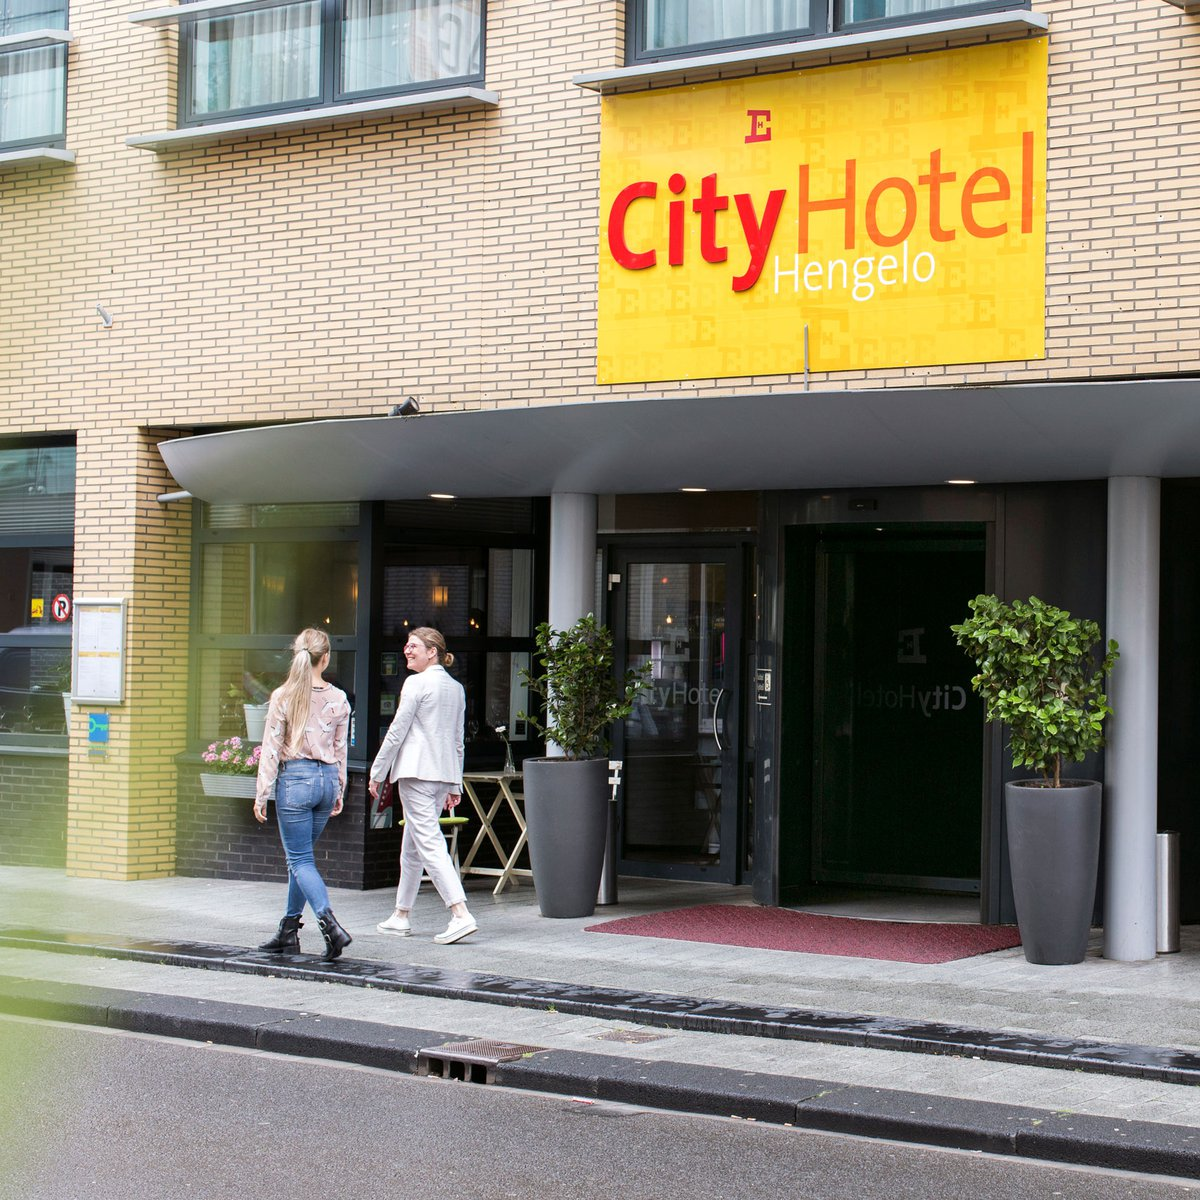 Hotels In Hengelo City Hotel Hengelo 4 In The Heart Of The City 10 Discount